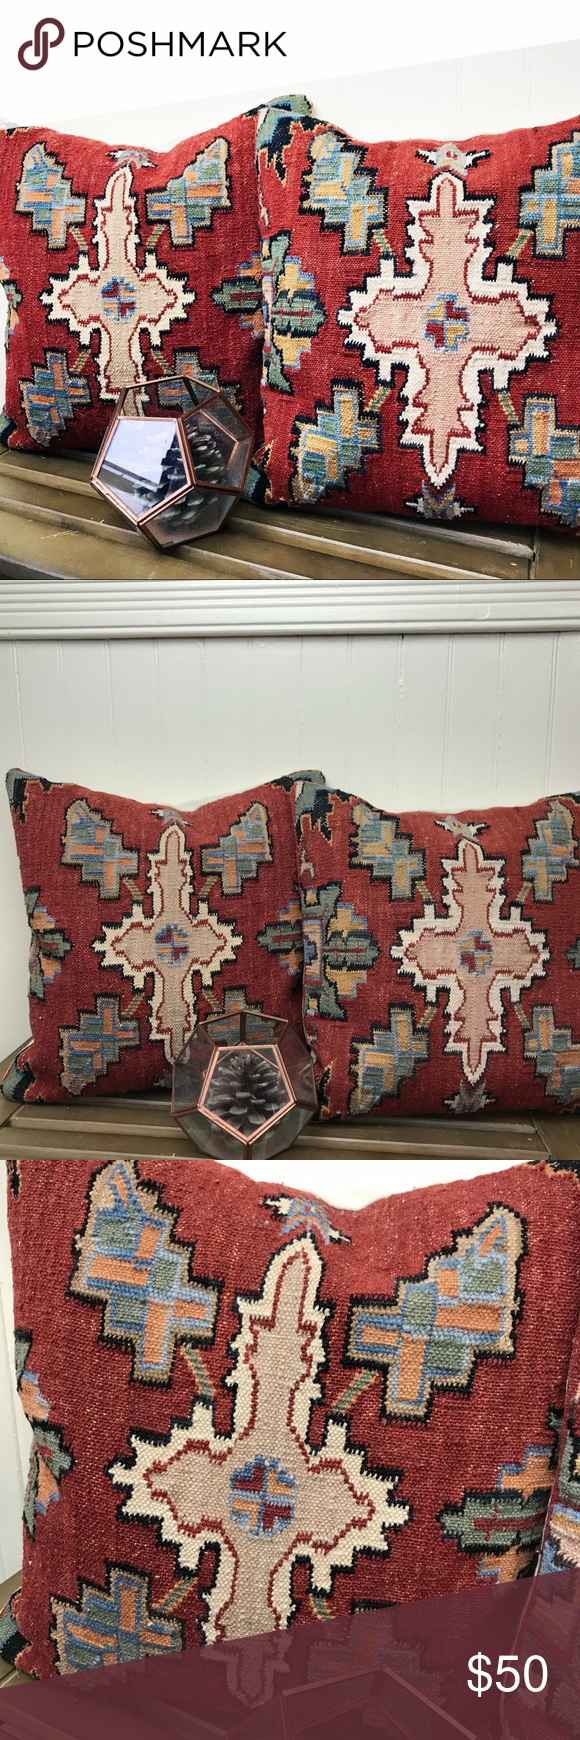 Pottery Barn Pillow Cover Set Pottery Barn Pillow Cover